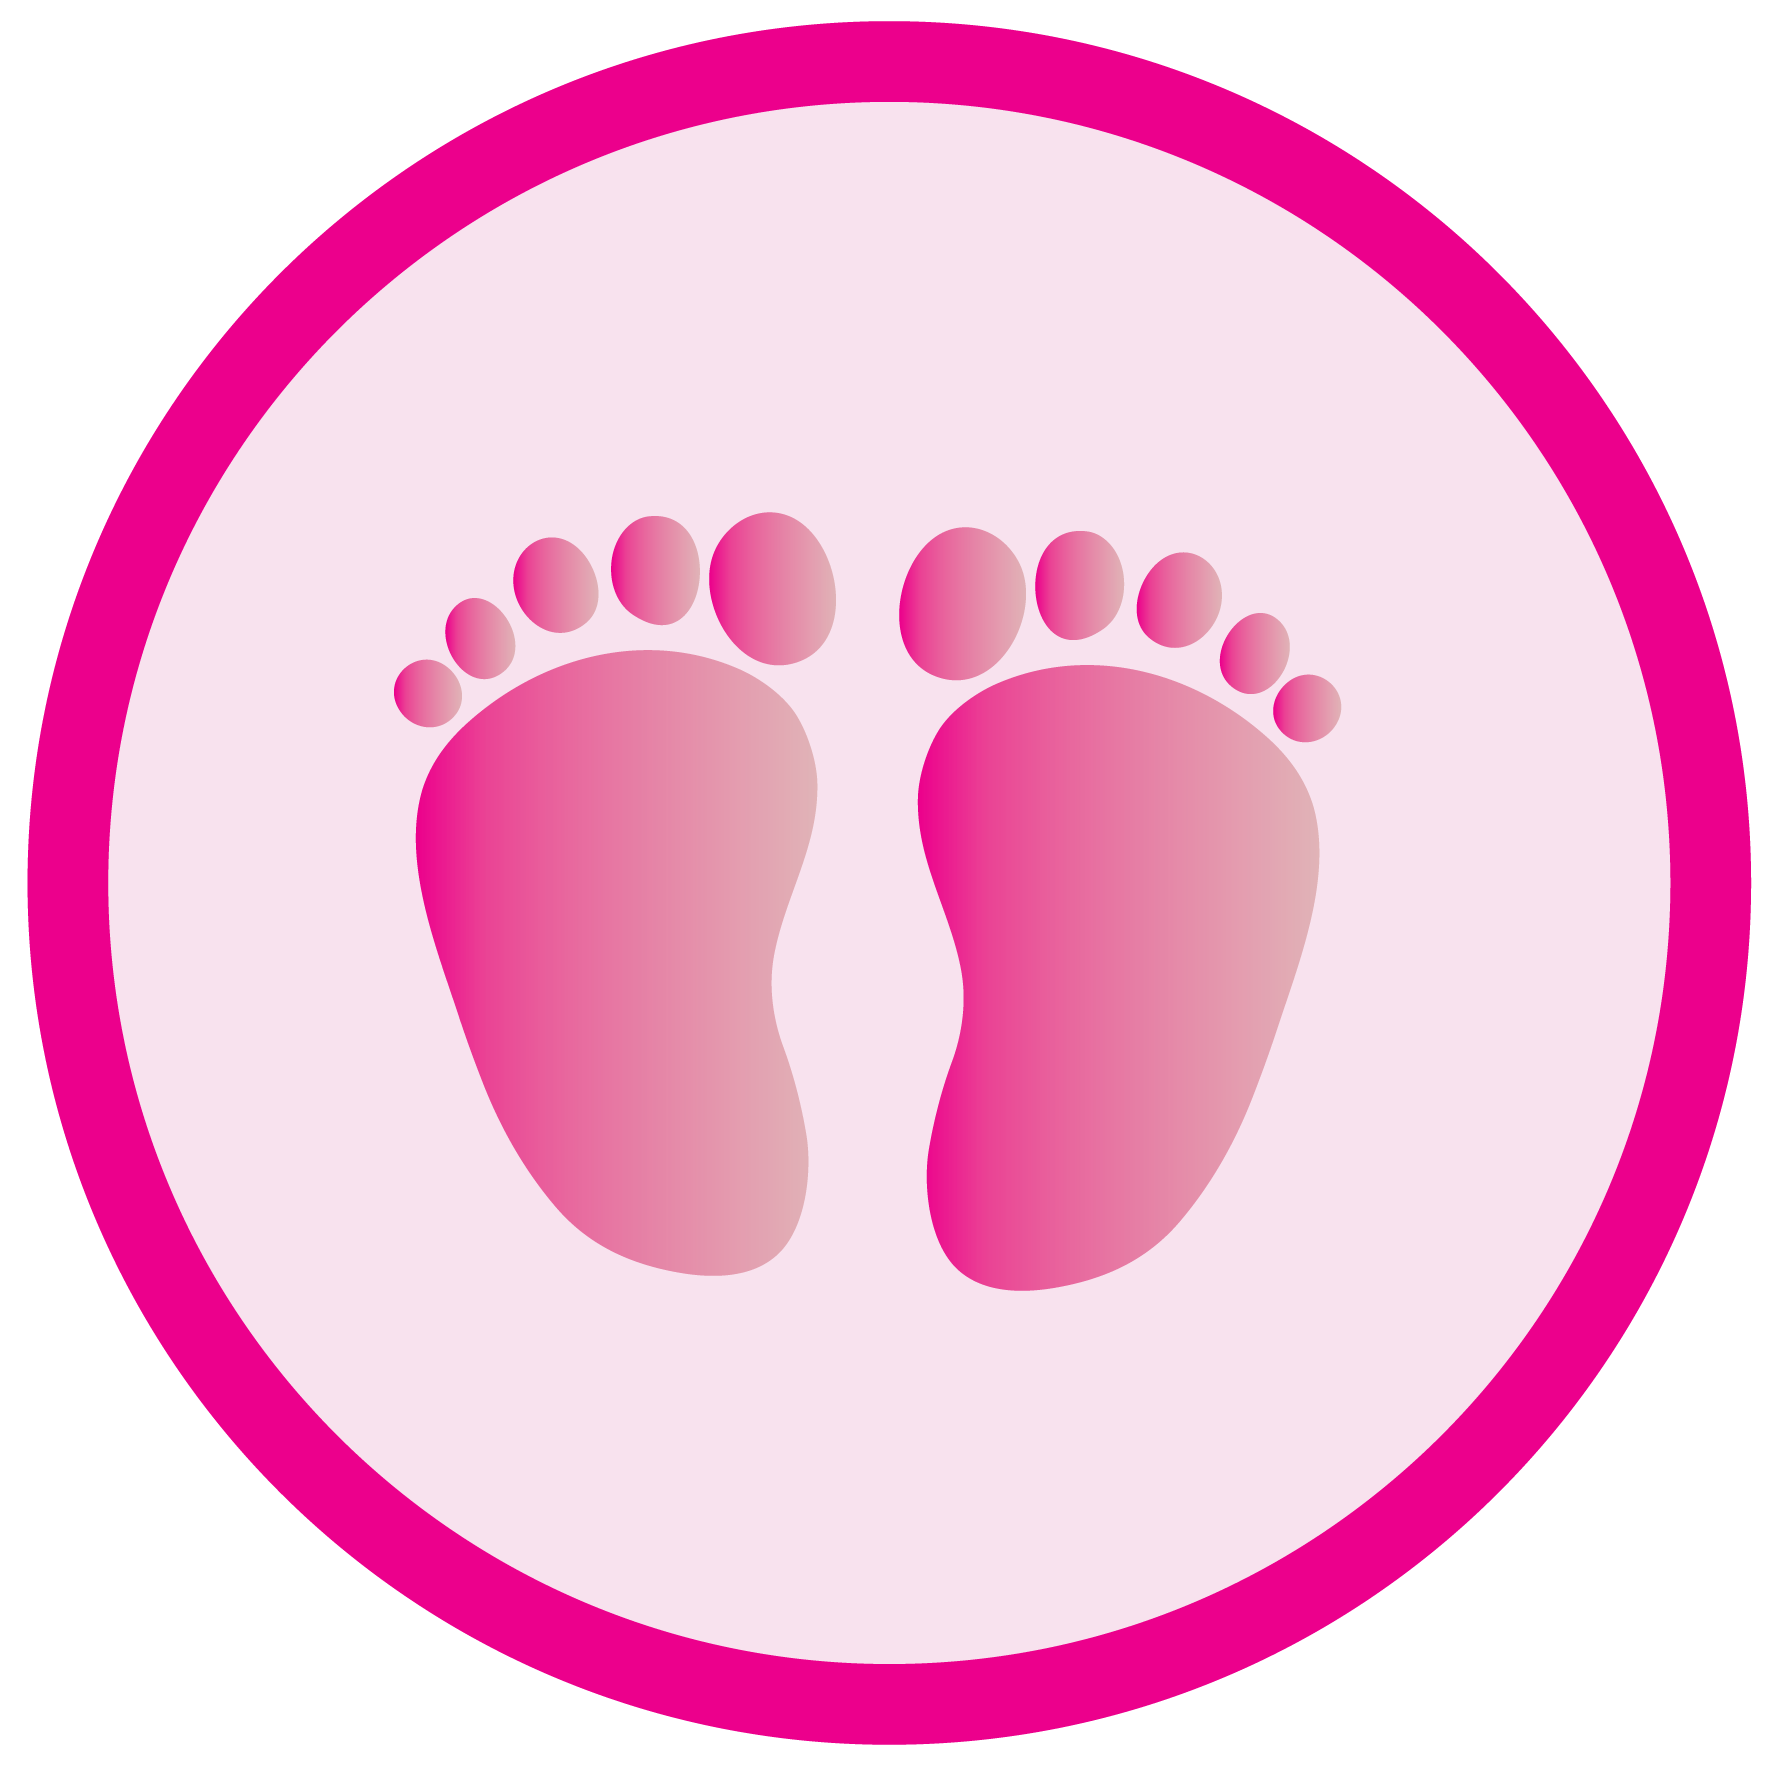 Pink clipart baby foot Clipart Baby Others Inspiration Clipart